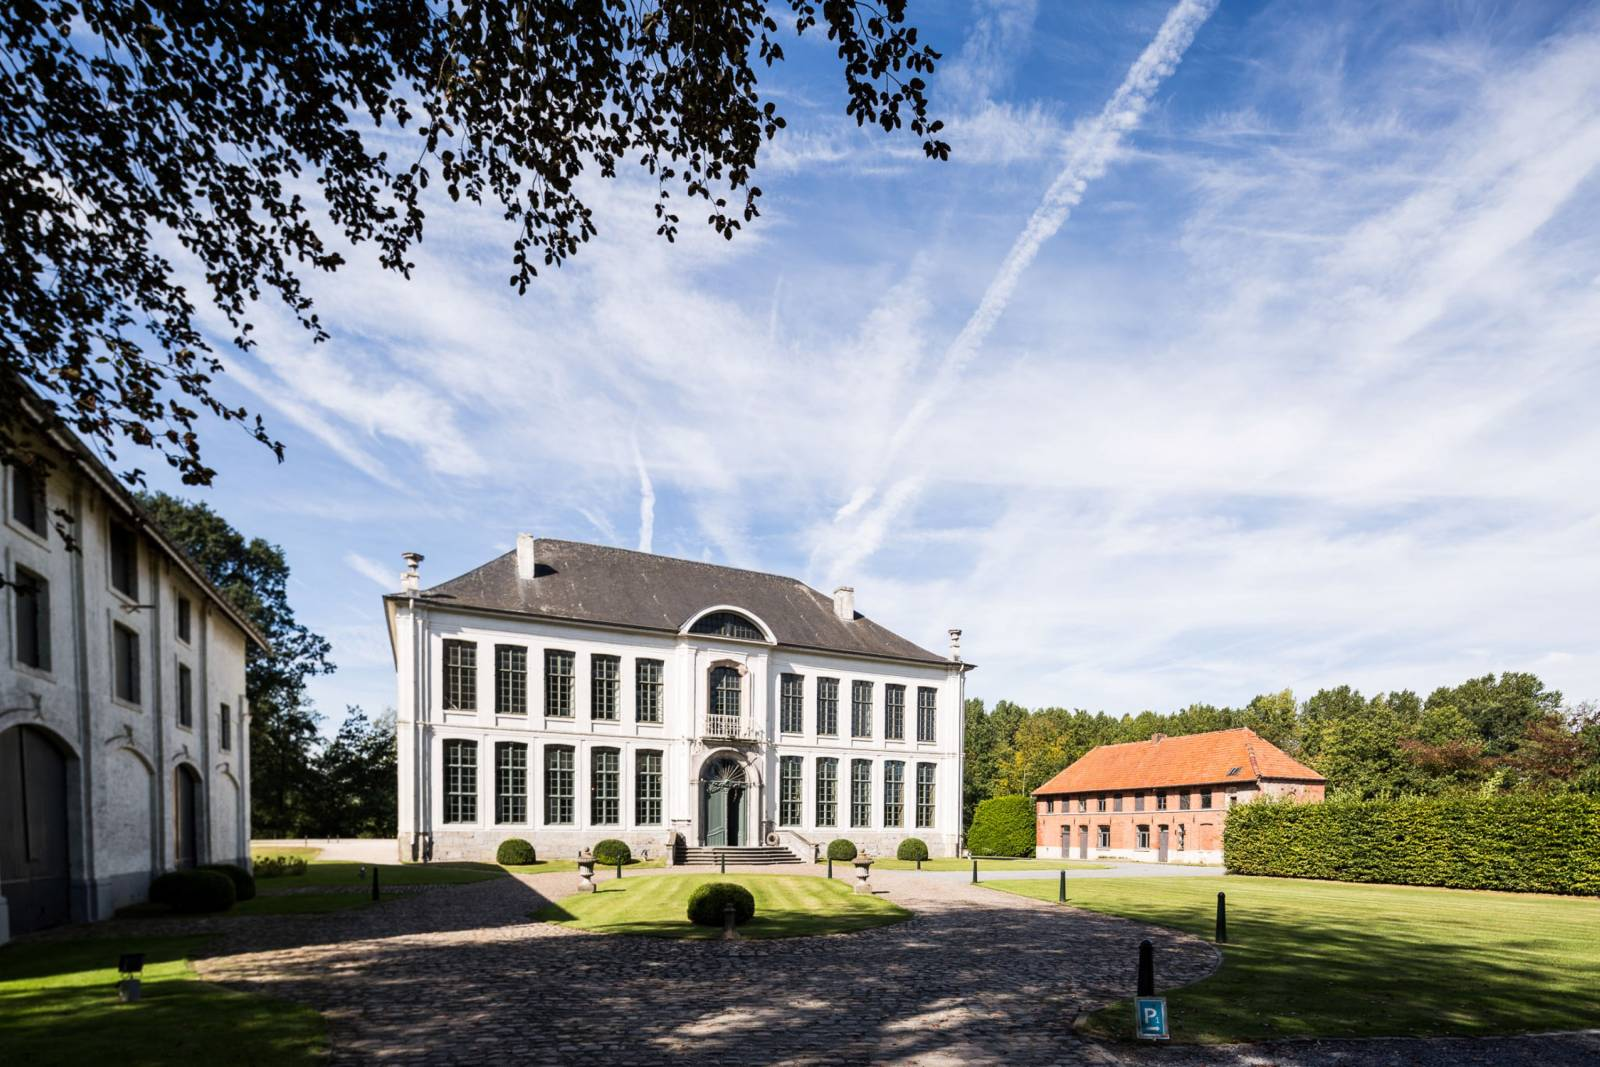 House of Weddings Kasteel Te Lake Feestzaal Oost-Vlaanderen Catering Ceremonie Zulte Gent (25)